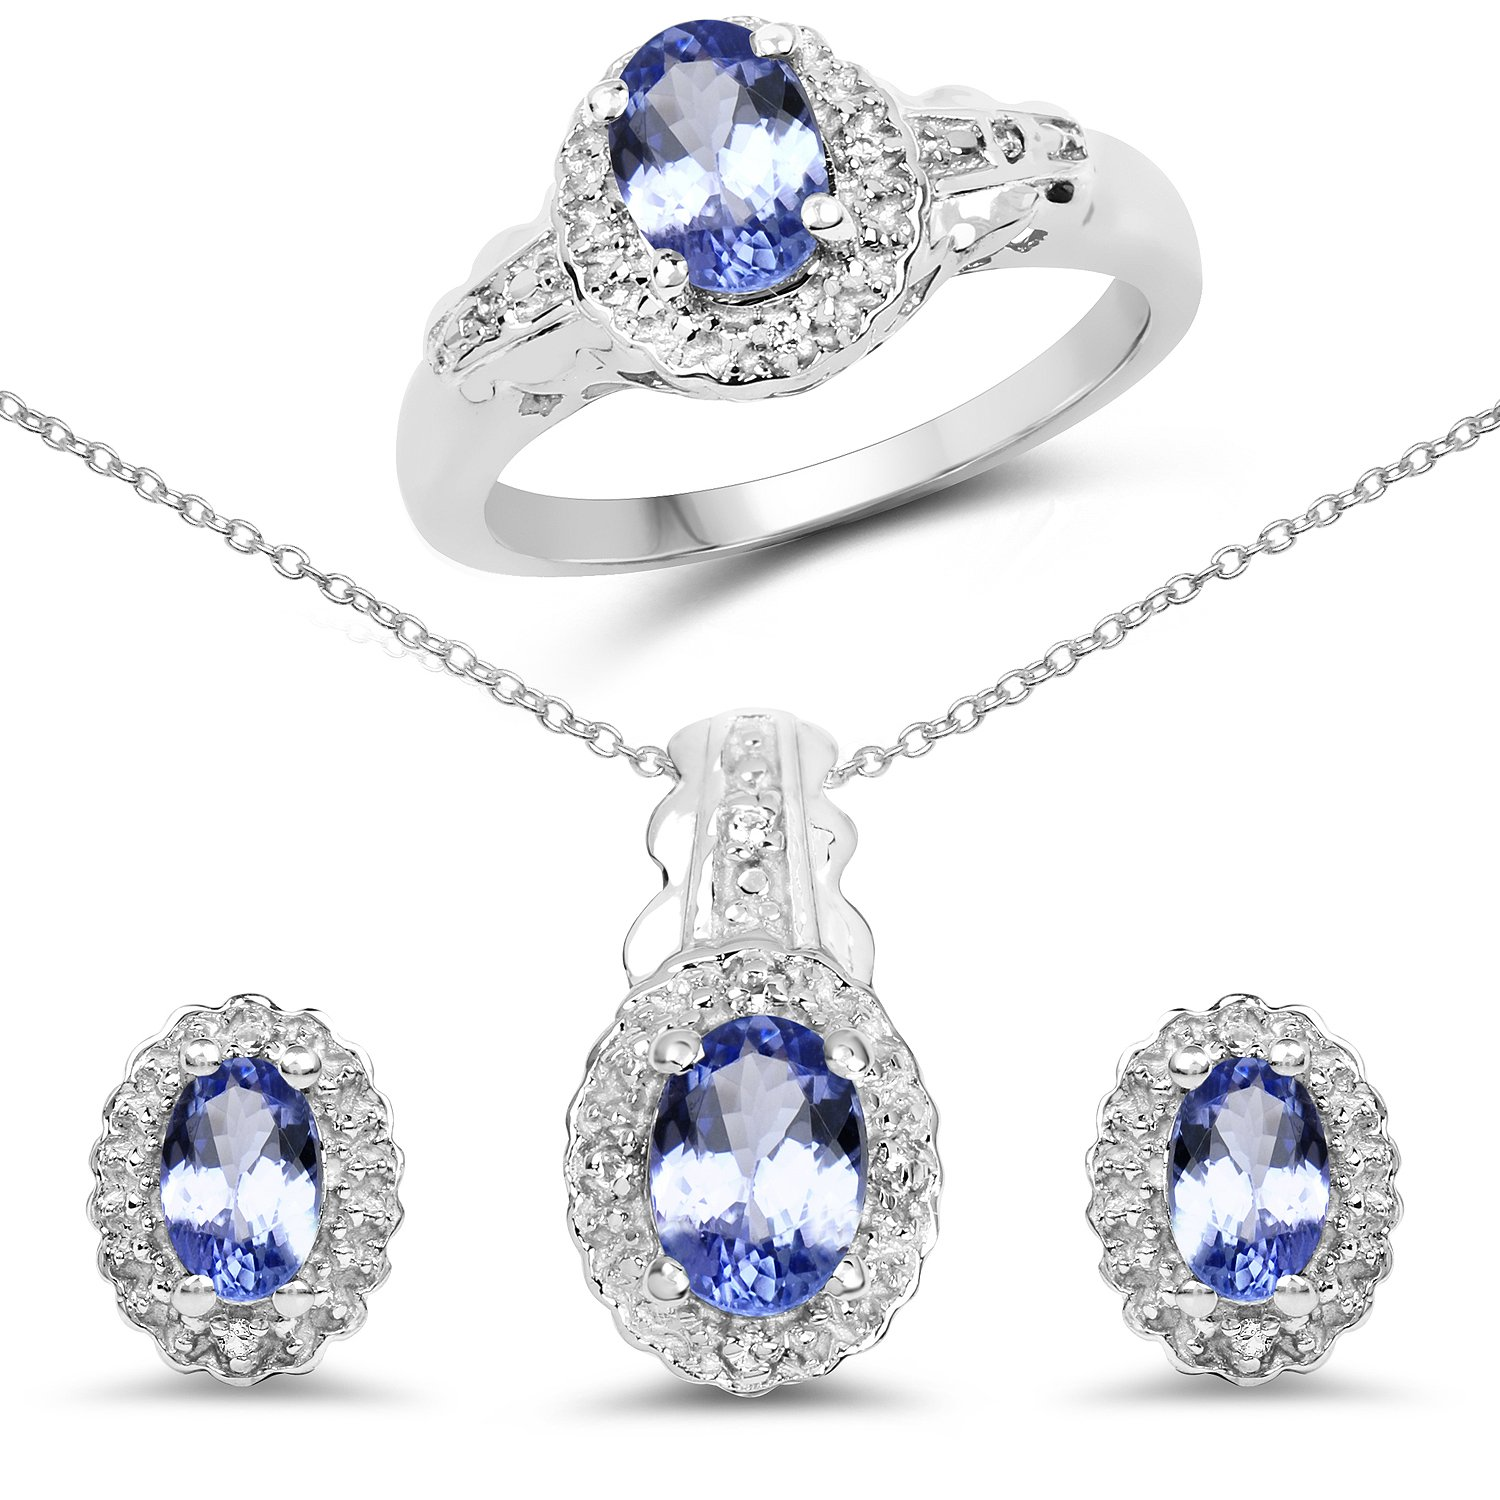 2.40 Carat Genuine Tanzanite & White Topaz .925 Sterling Silver Ring, Earrings & Pendant Set